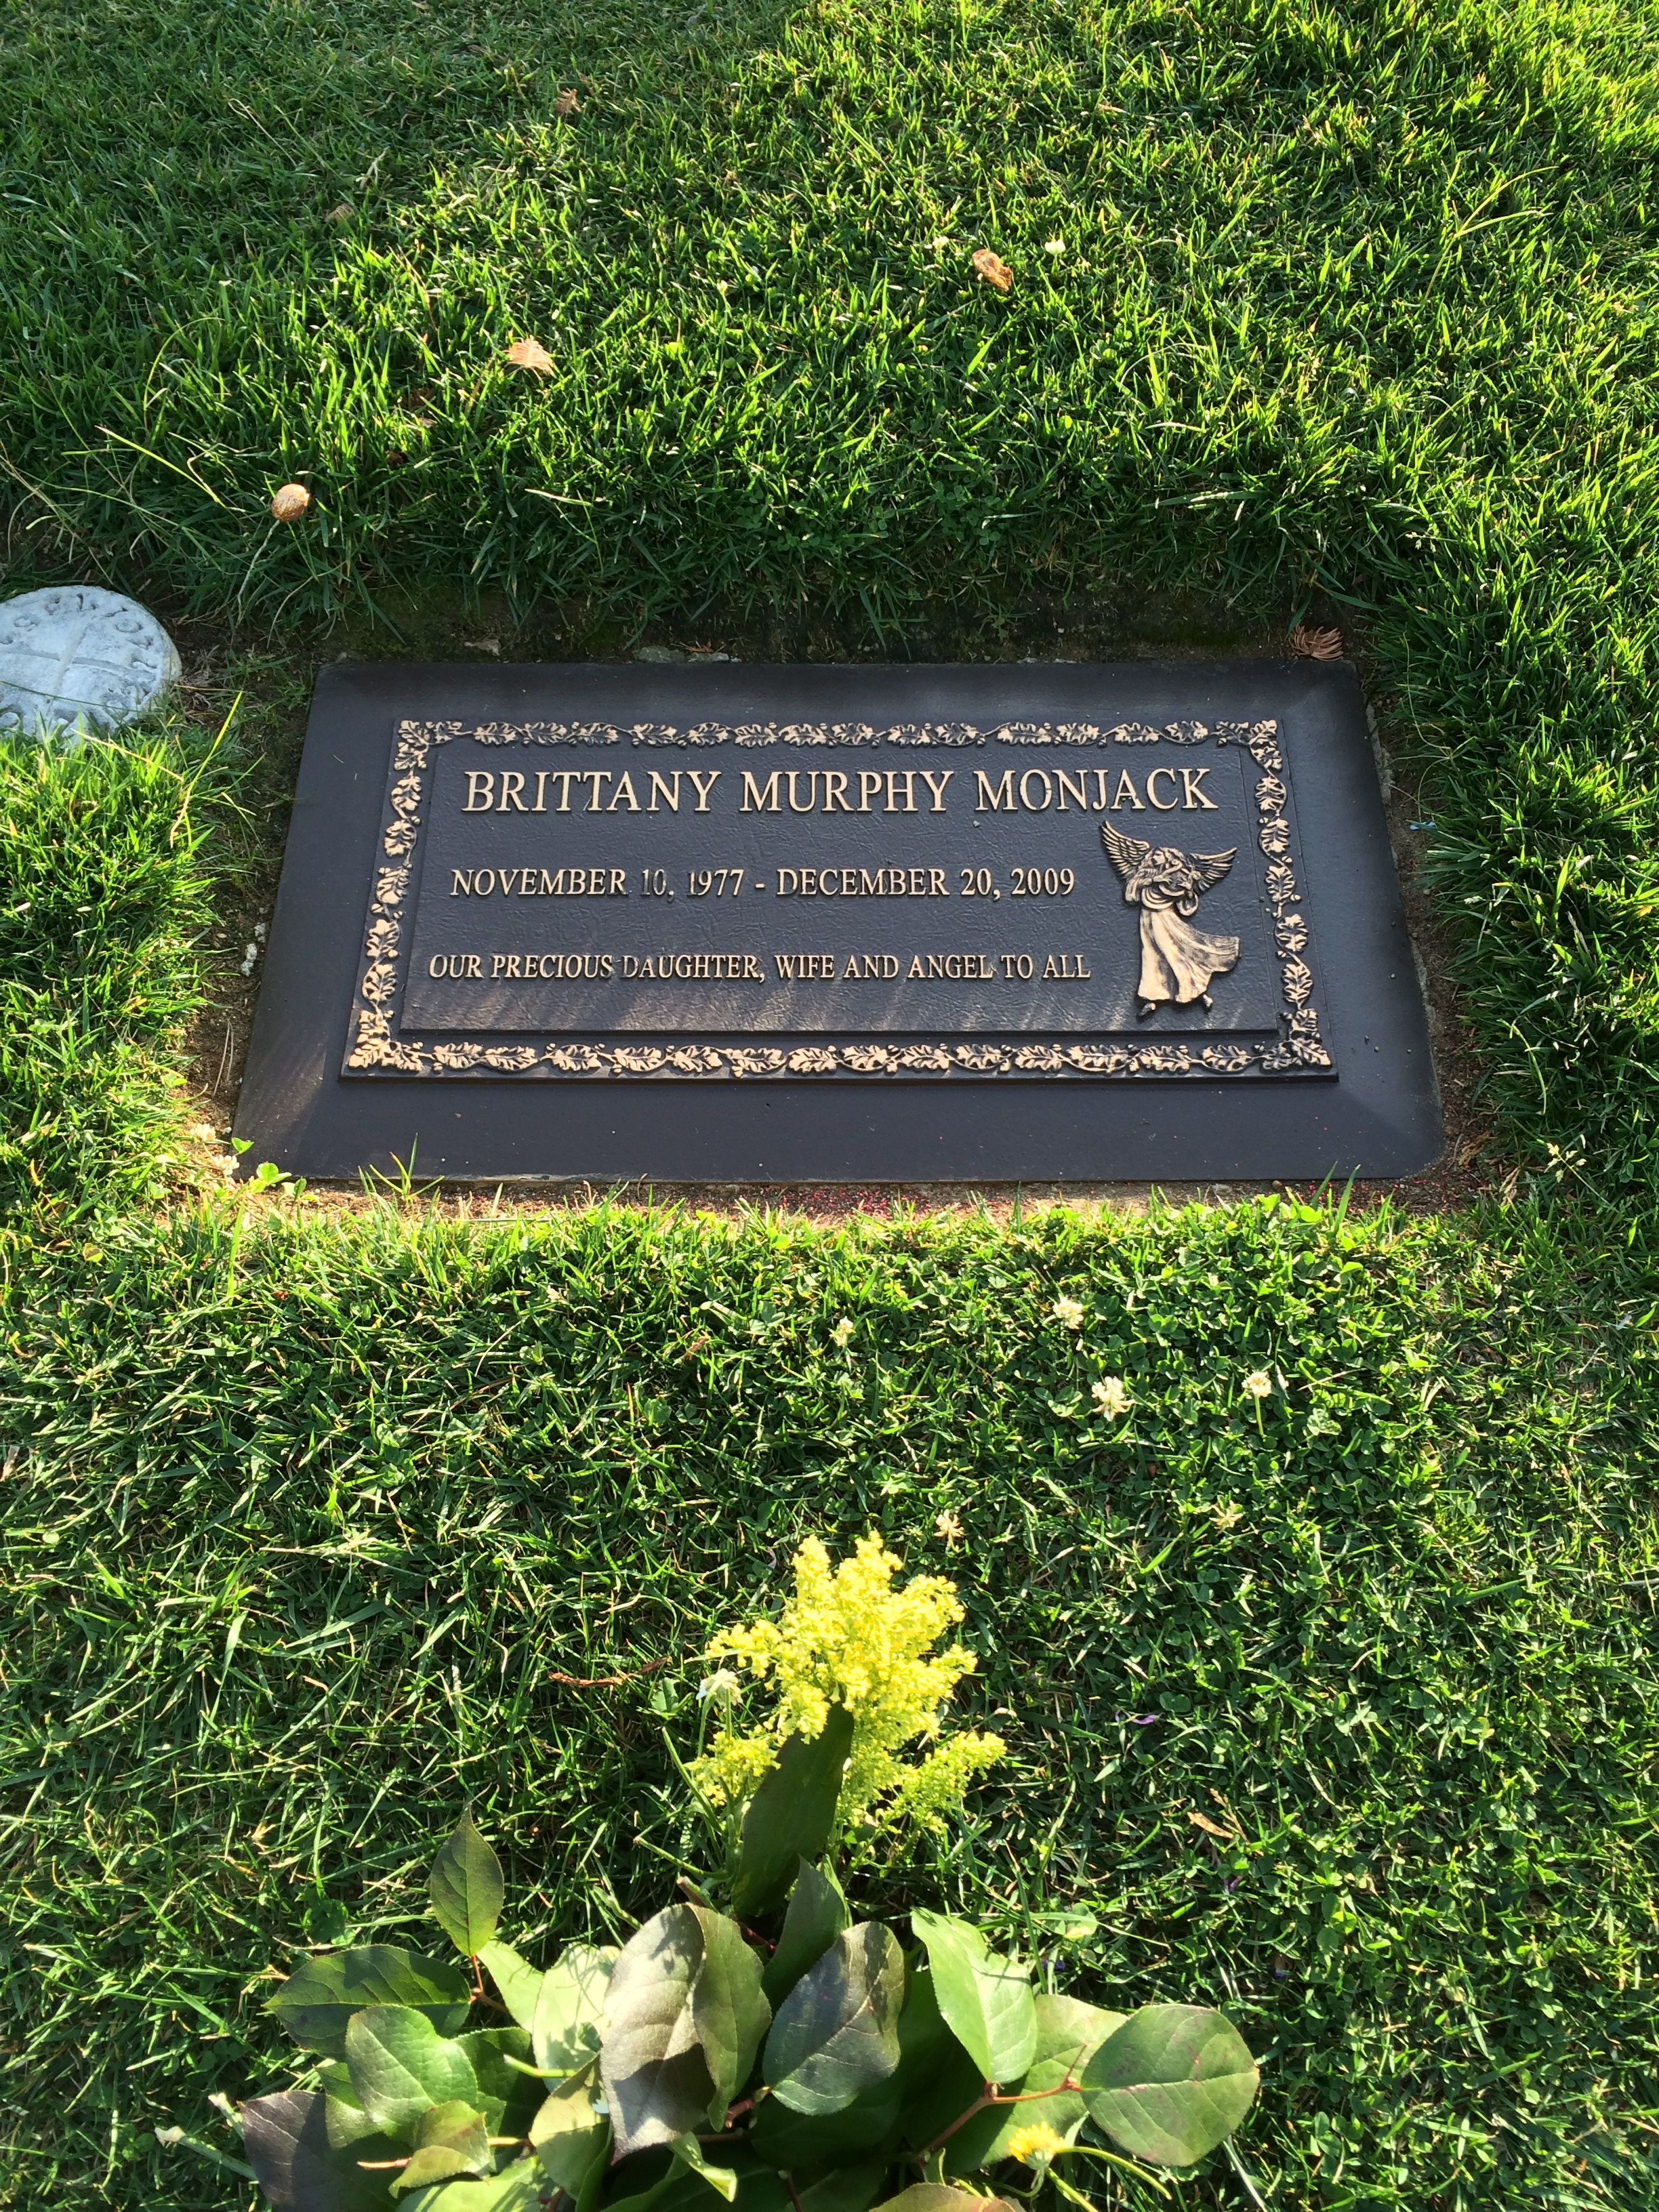 Brittany Murphy is buried in the same cemetery as Michael Jackson 12/25/2009 84